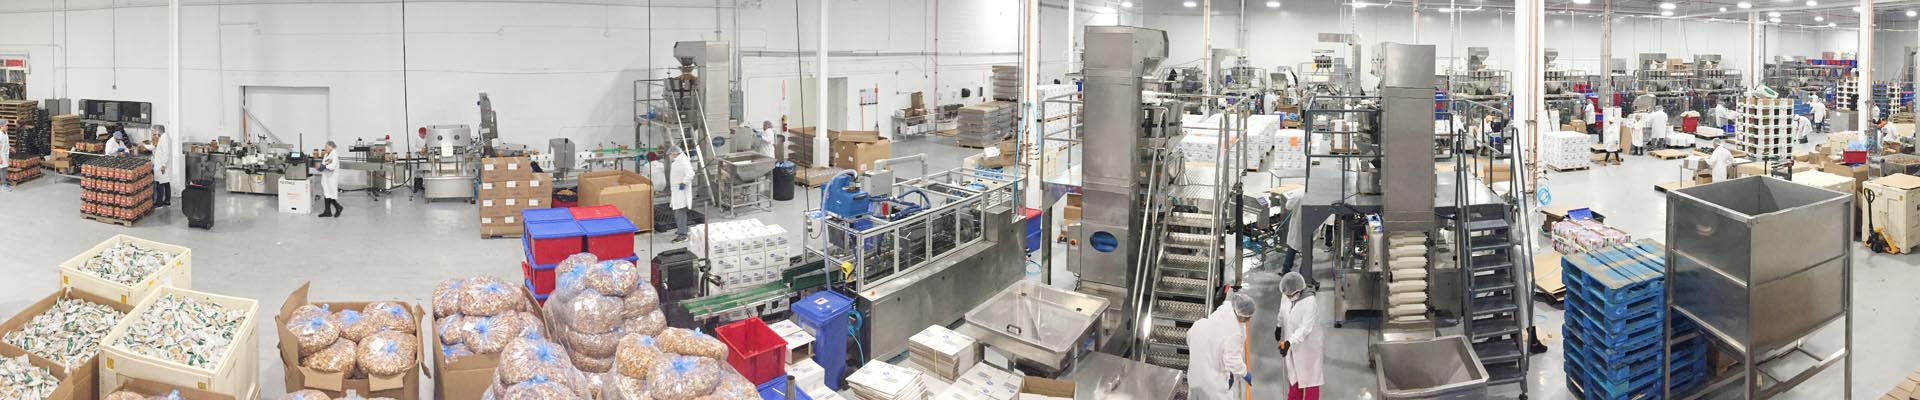 jar packing line 2019